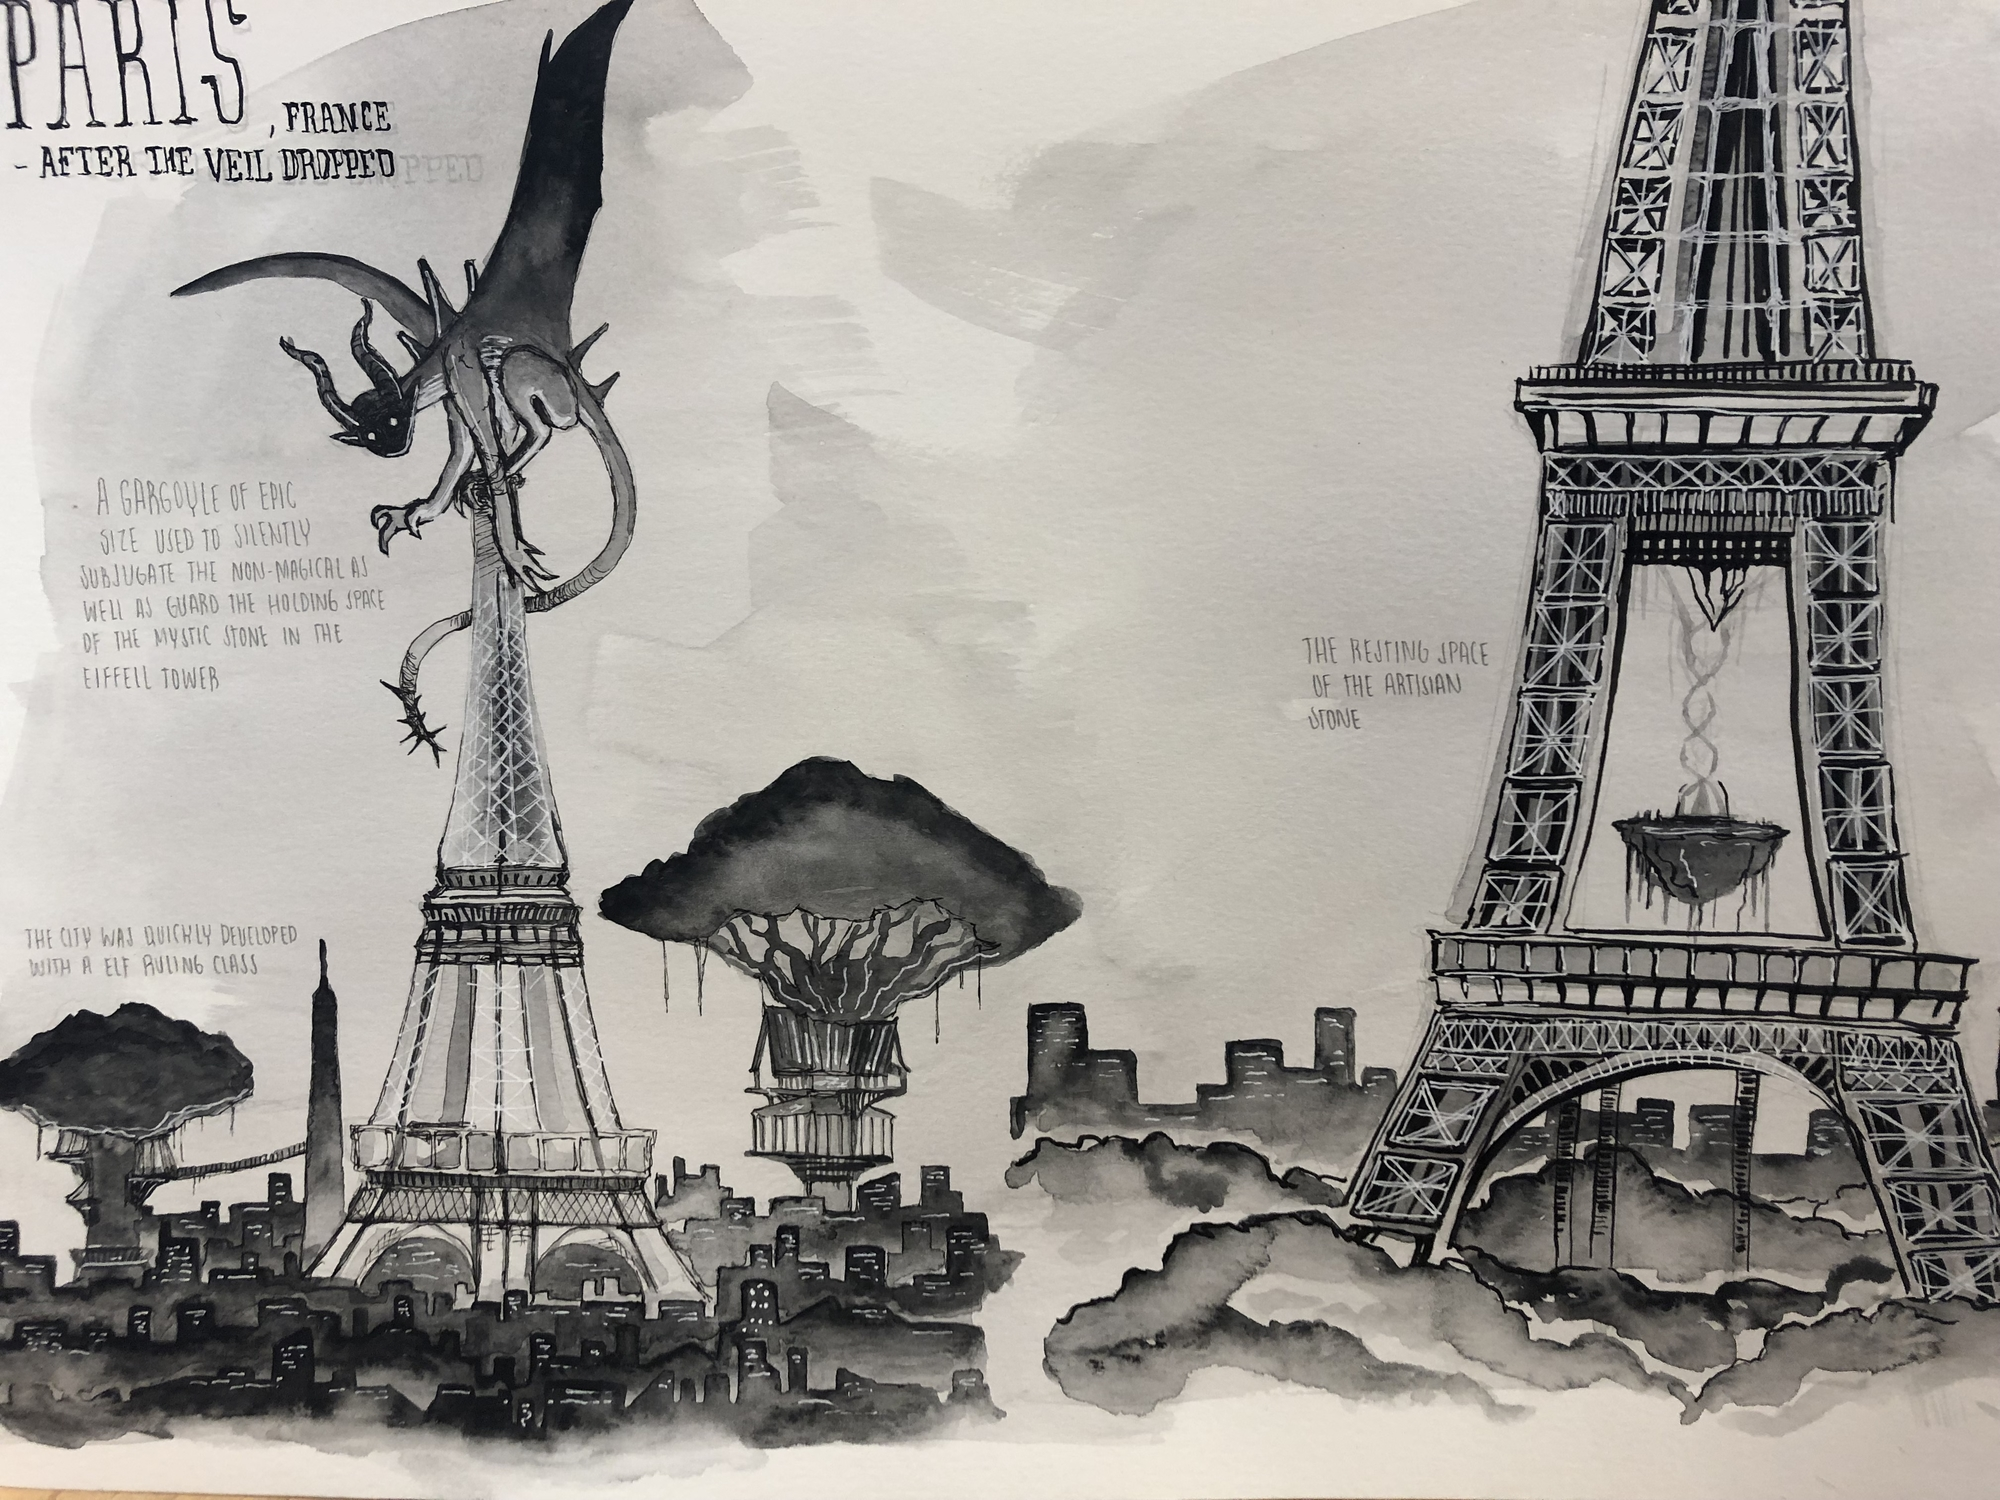 Paris under the elves p1 Artwork by eddie torres